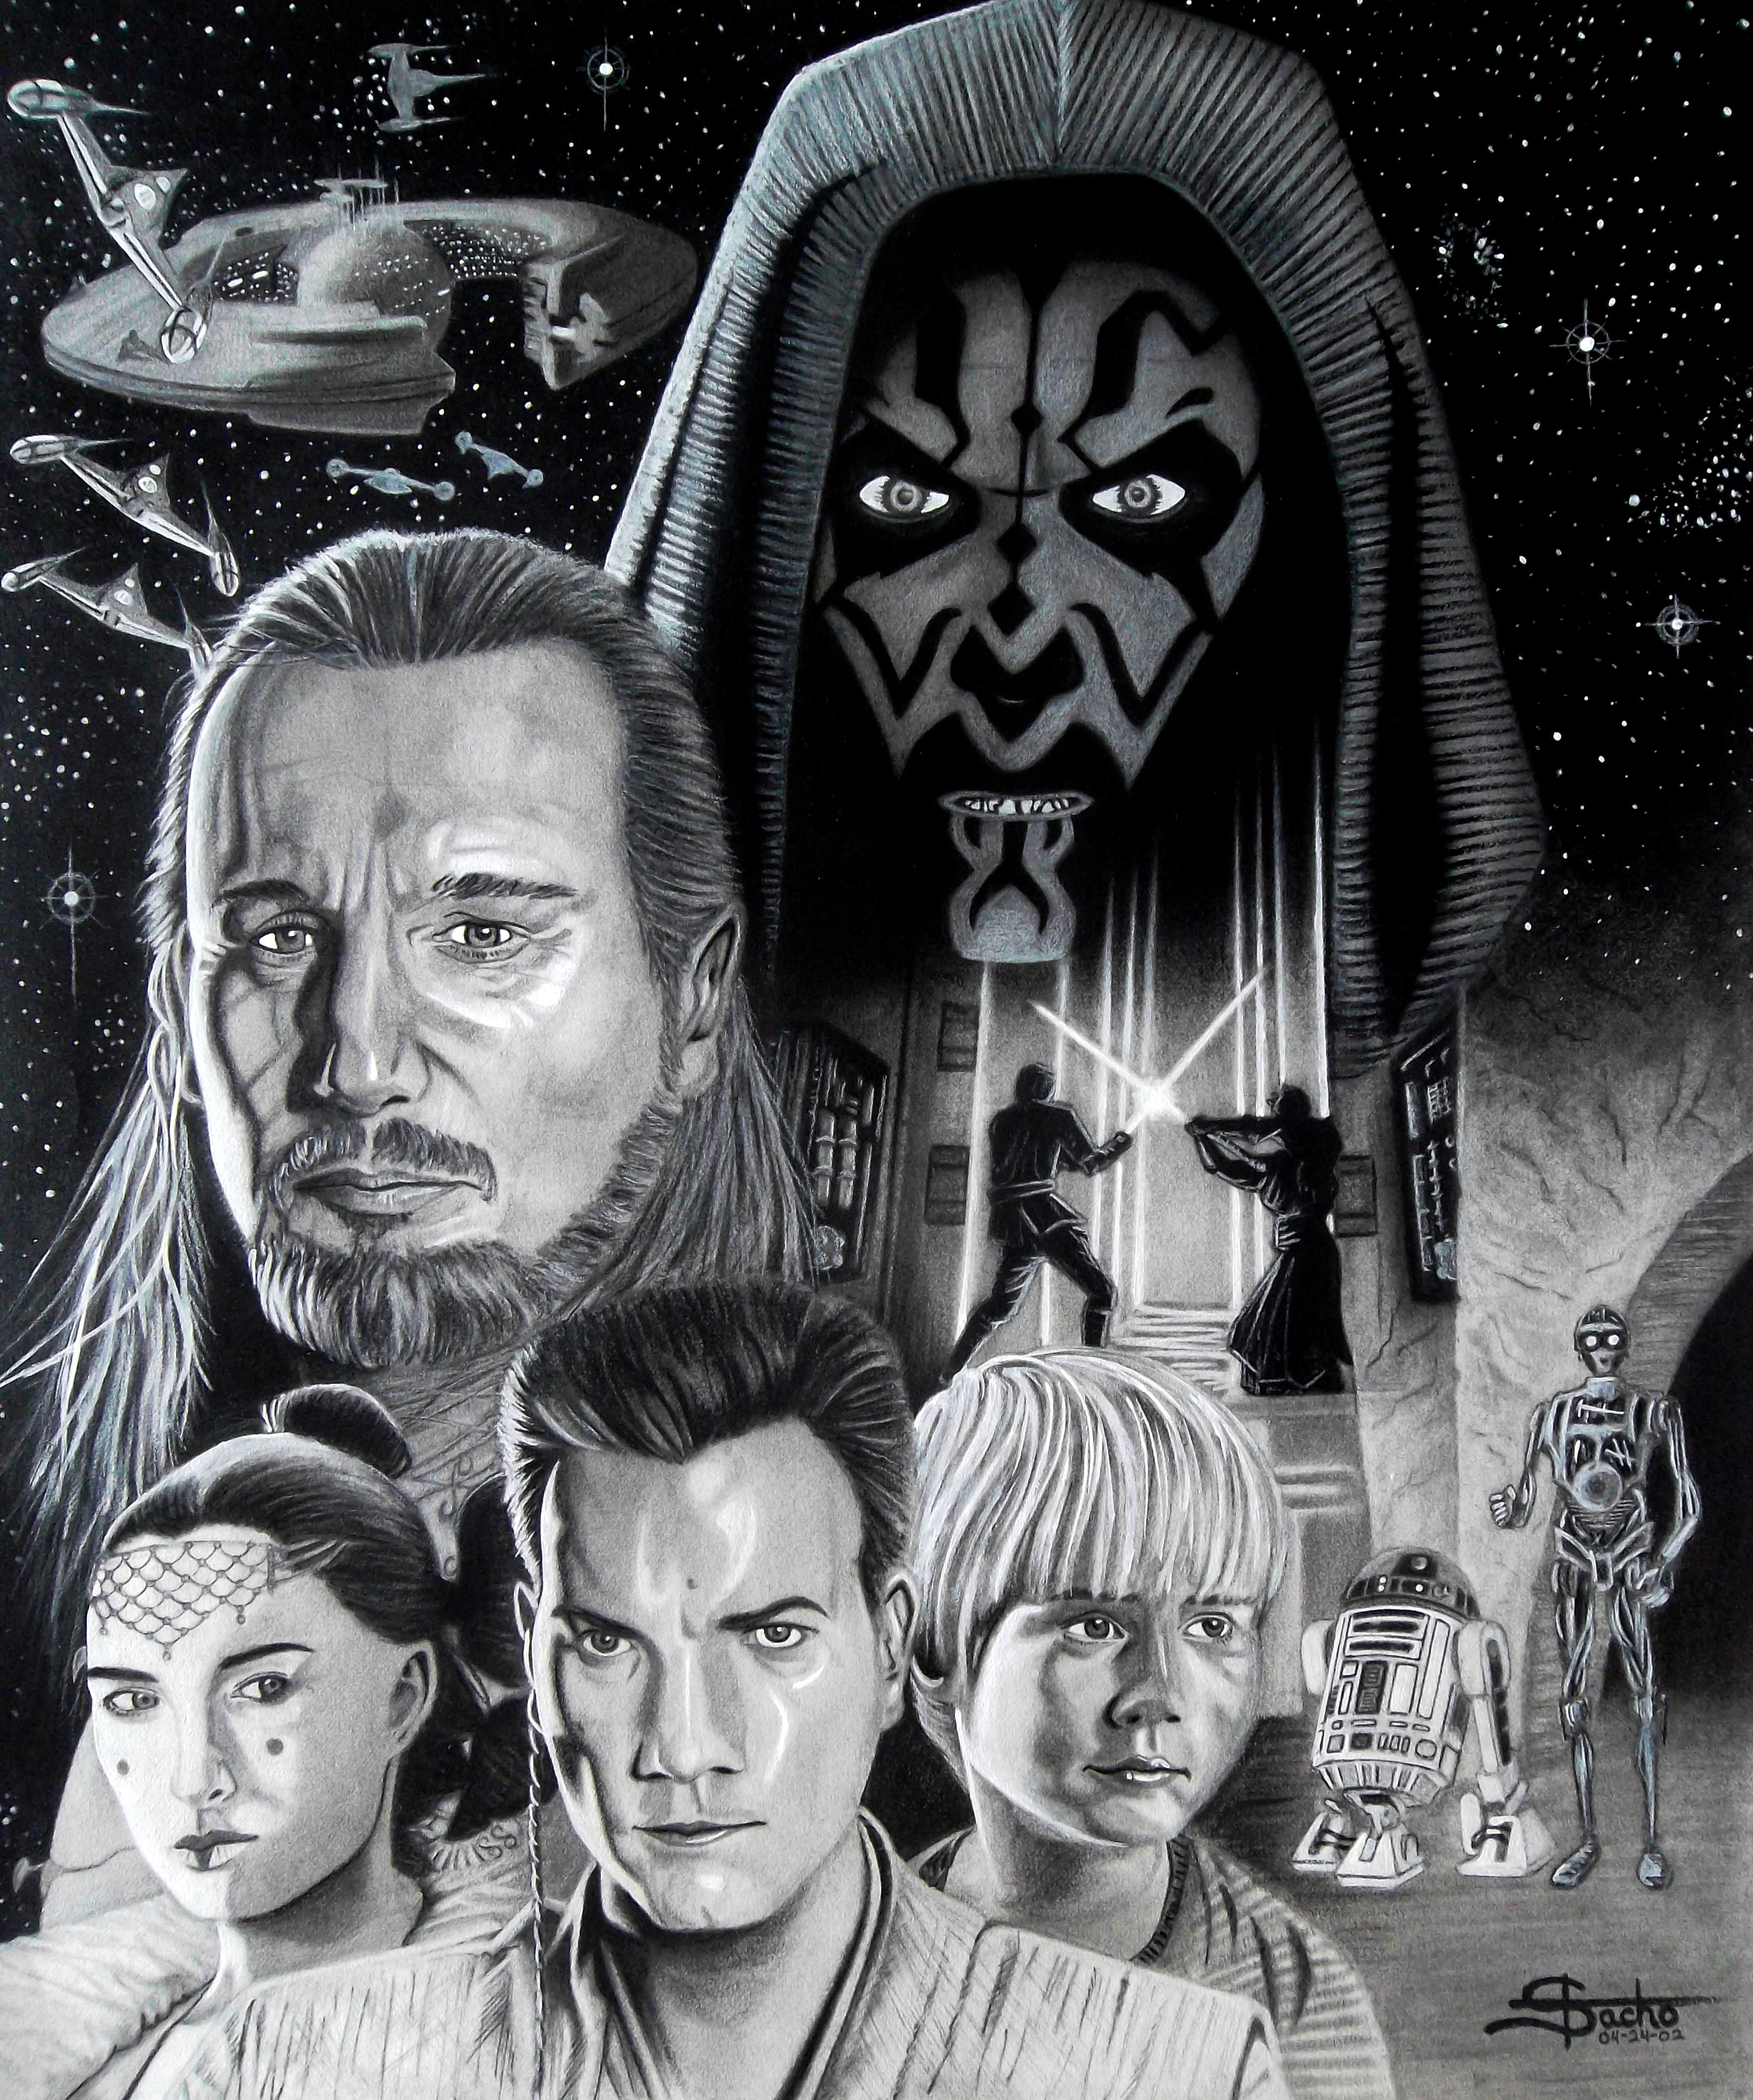 The Phantom Menace This is not my favorite piece as I could have done better, but it does have some quality to it.